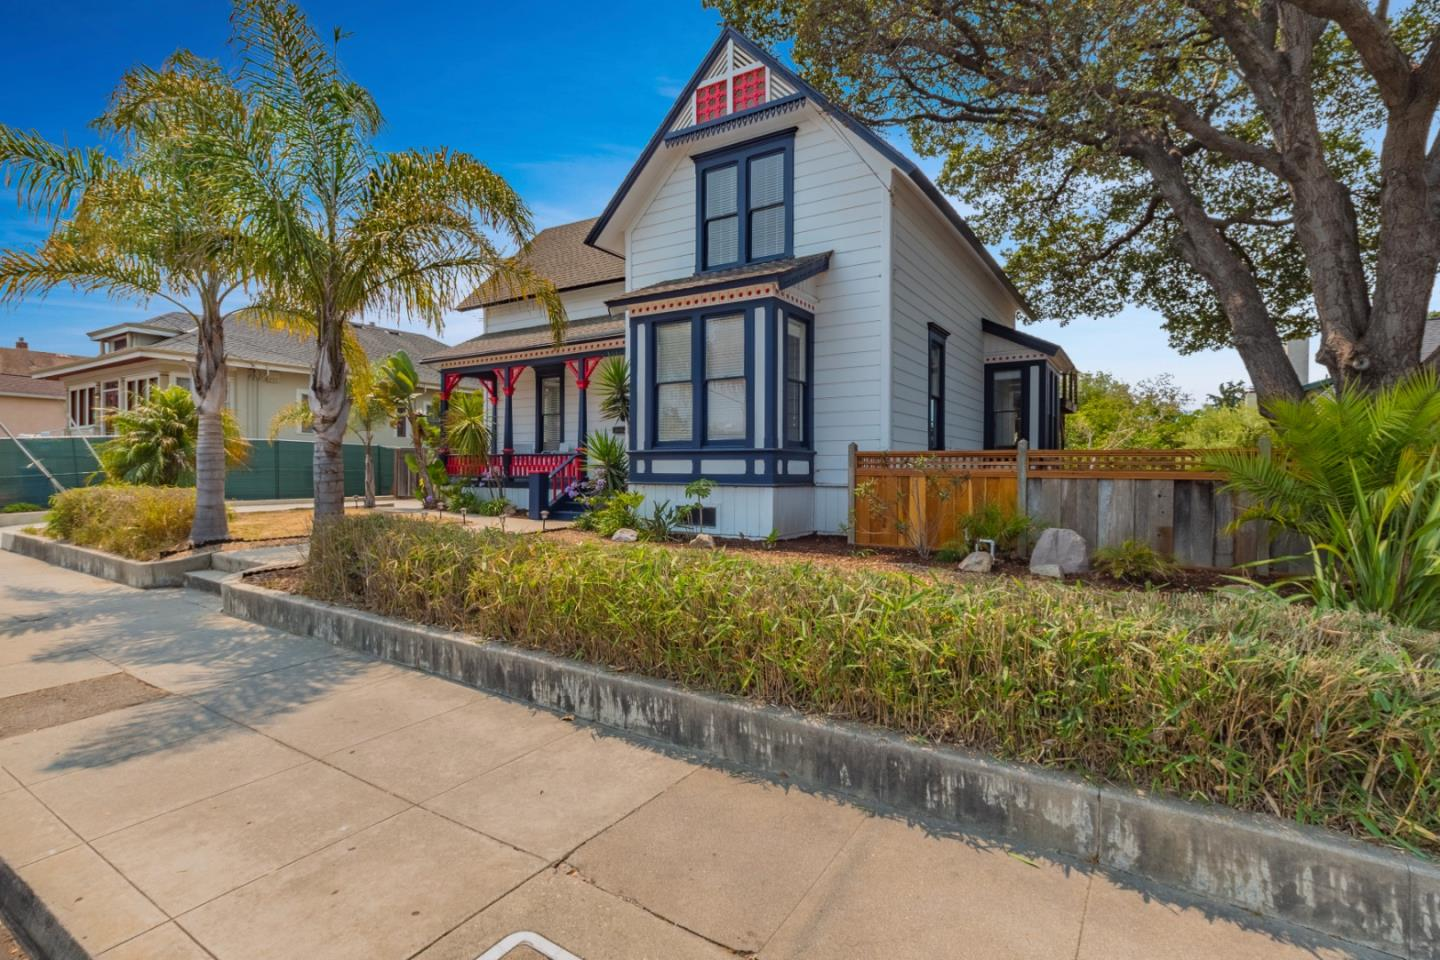 This beautiful Victorian is a legal triplex and centered in the highly desirable Seabright Beach neighborhood & recently designated Opportunity Zone! With 3 kitchens, 3 bathrooms, 4 bedrooms, 3 living spaces and a very large lot, you have endless options for making the most of this amazing property. Bring your entire family together for a barbecue on the huge deck, then retreat to a private unit to enjoy a book after a long day at the beach. Or rent out a unit or two and keep one available for your family to use whenever you want! Now that's a savvy way to vacay! Develop the expansive lot into additional units to accommodate a larger family or gain more rental income. Walk or bike to local favorite hotspots such as Verve Coffee, Java Junction, La Posta, Tramonti, Linda's Seabreeze Cafe, and the Arana Gulch trail, which provides lovely views and easy access to the Santa Cruz Harbor and, of course, Seabright Beach!